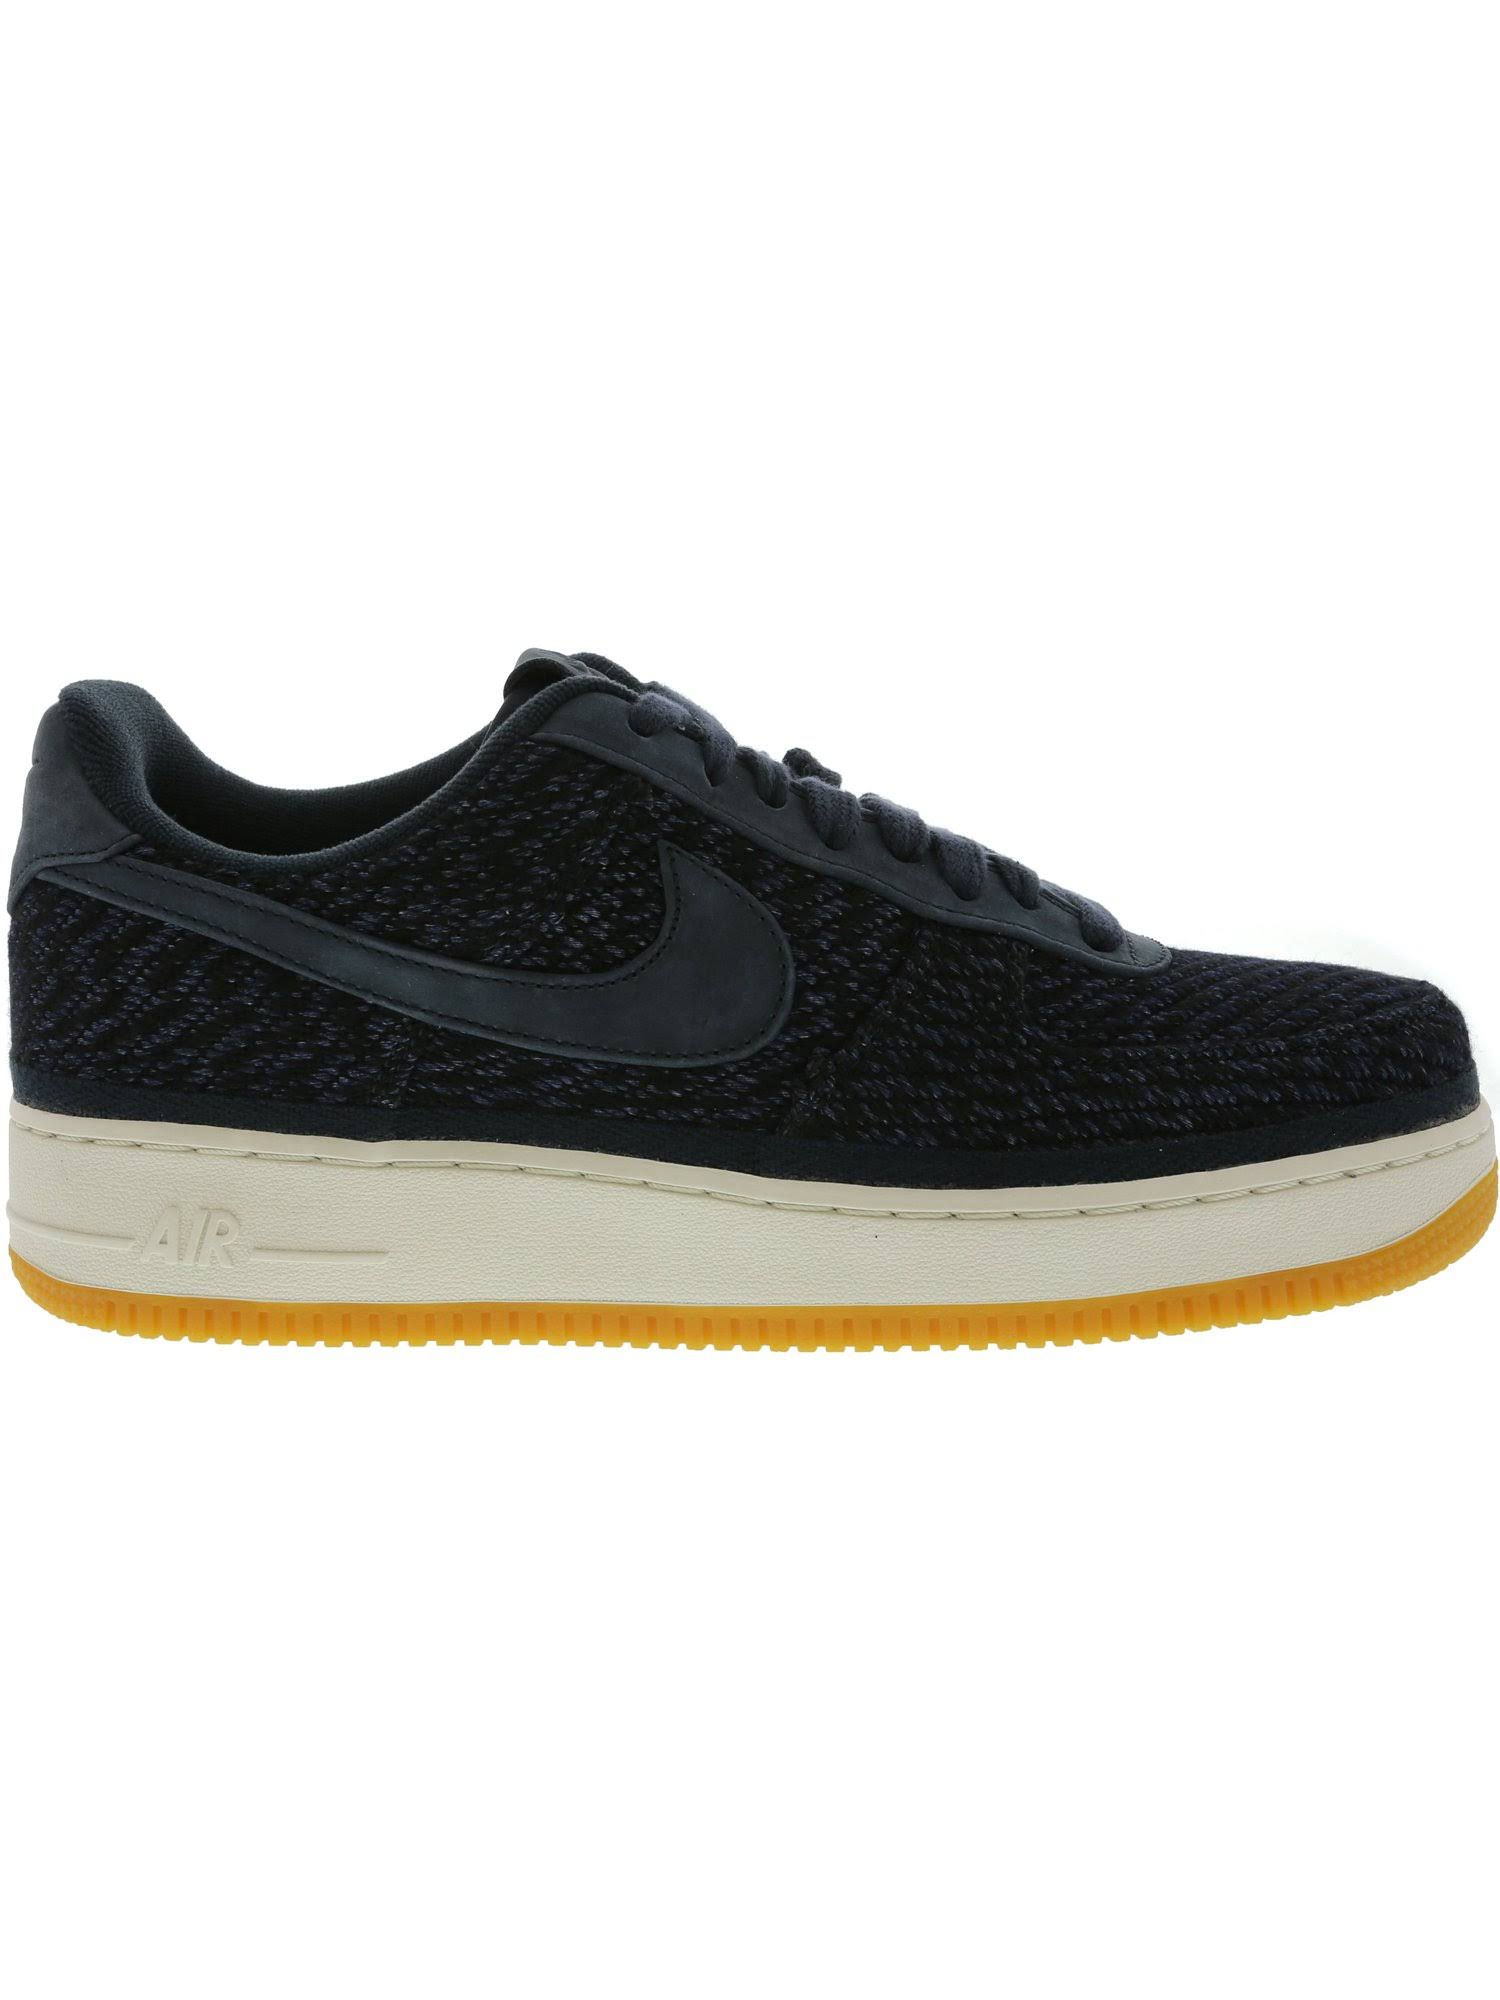 Low Air 1 Force Armory Zapatos Para Hombre Navy Tamaño Nike 917825400 10 7twqTdR7